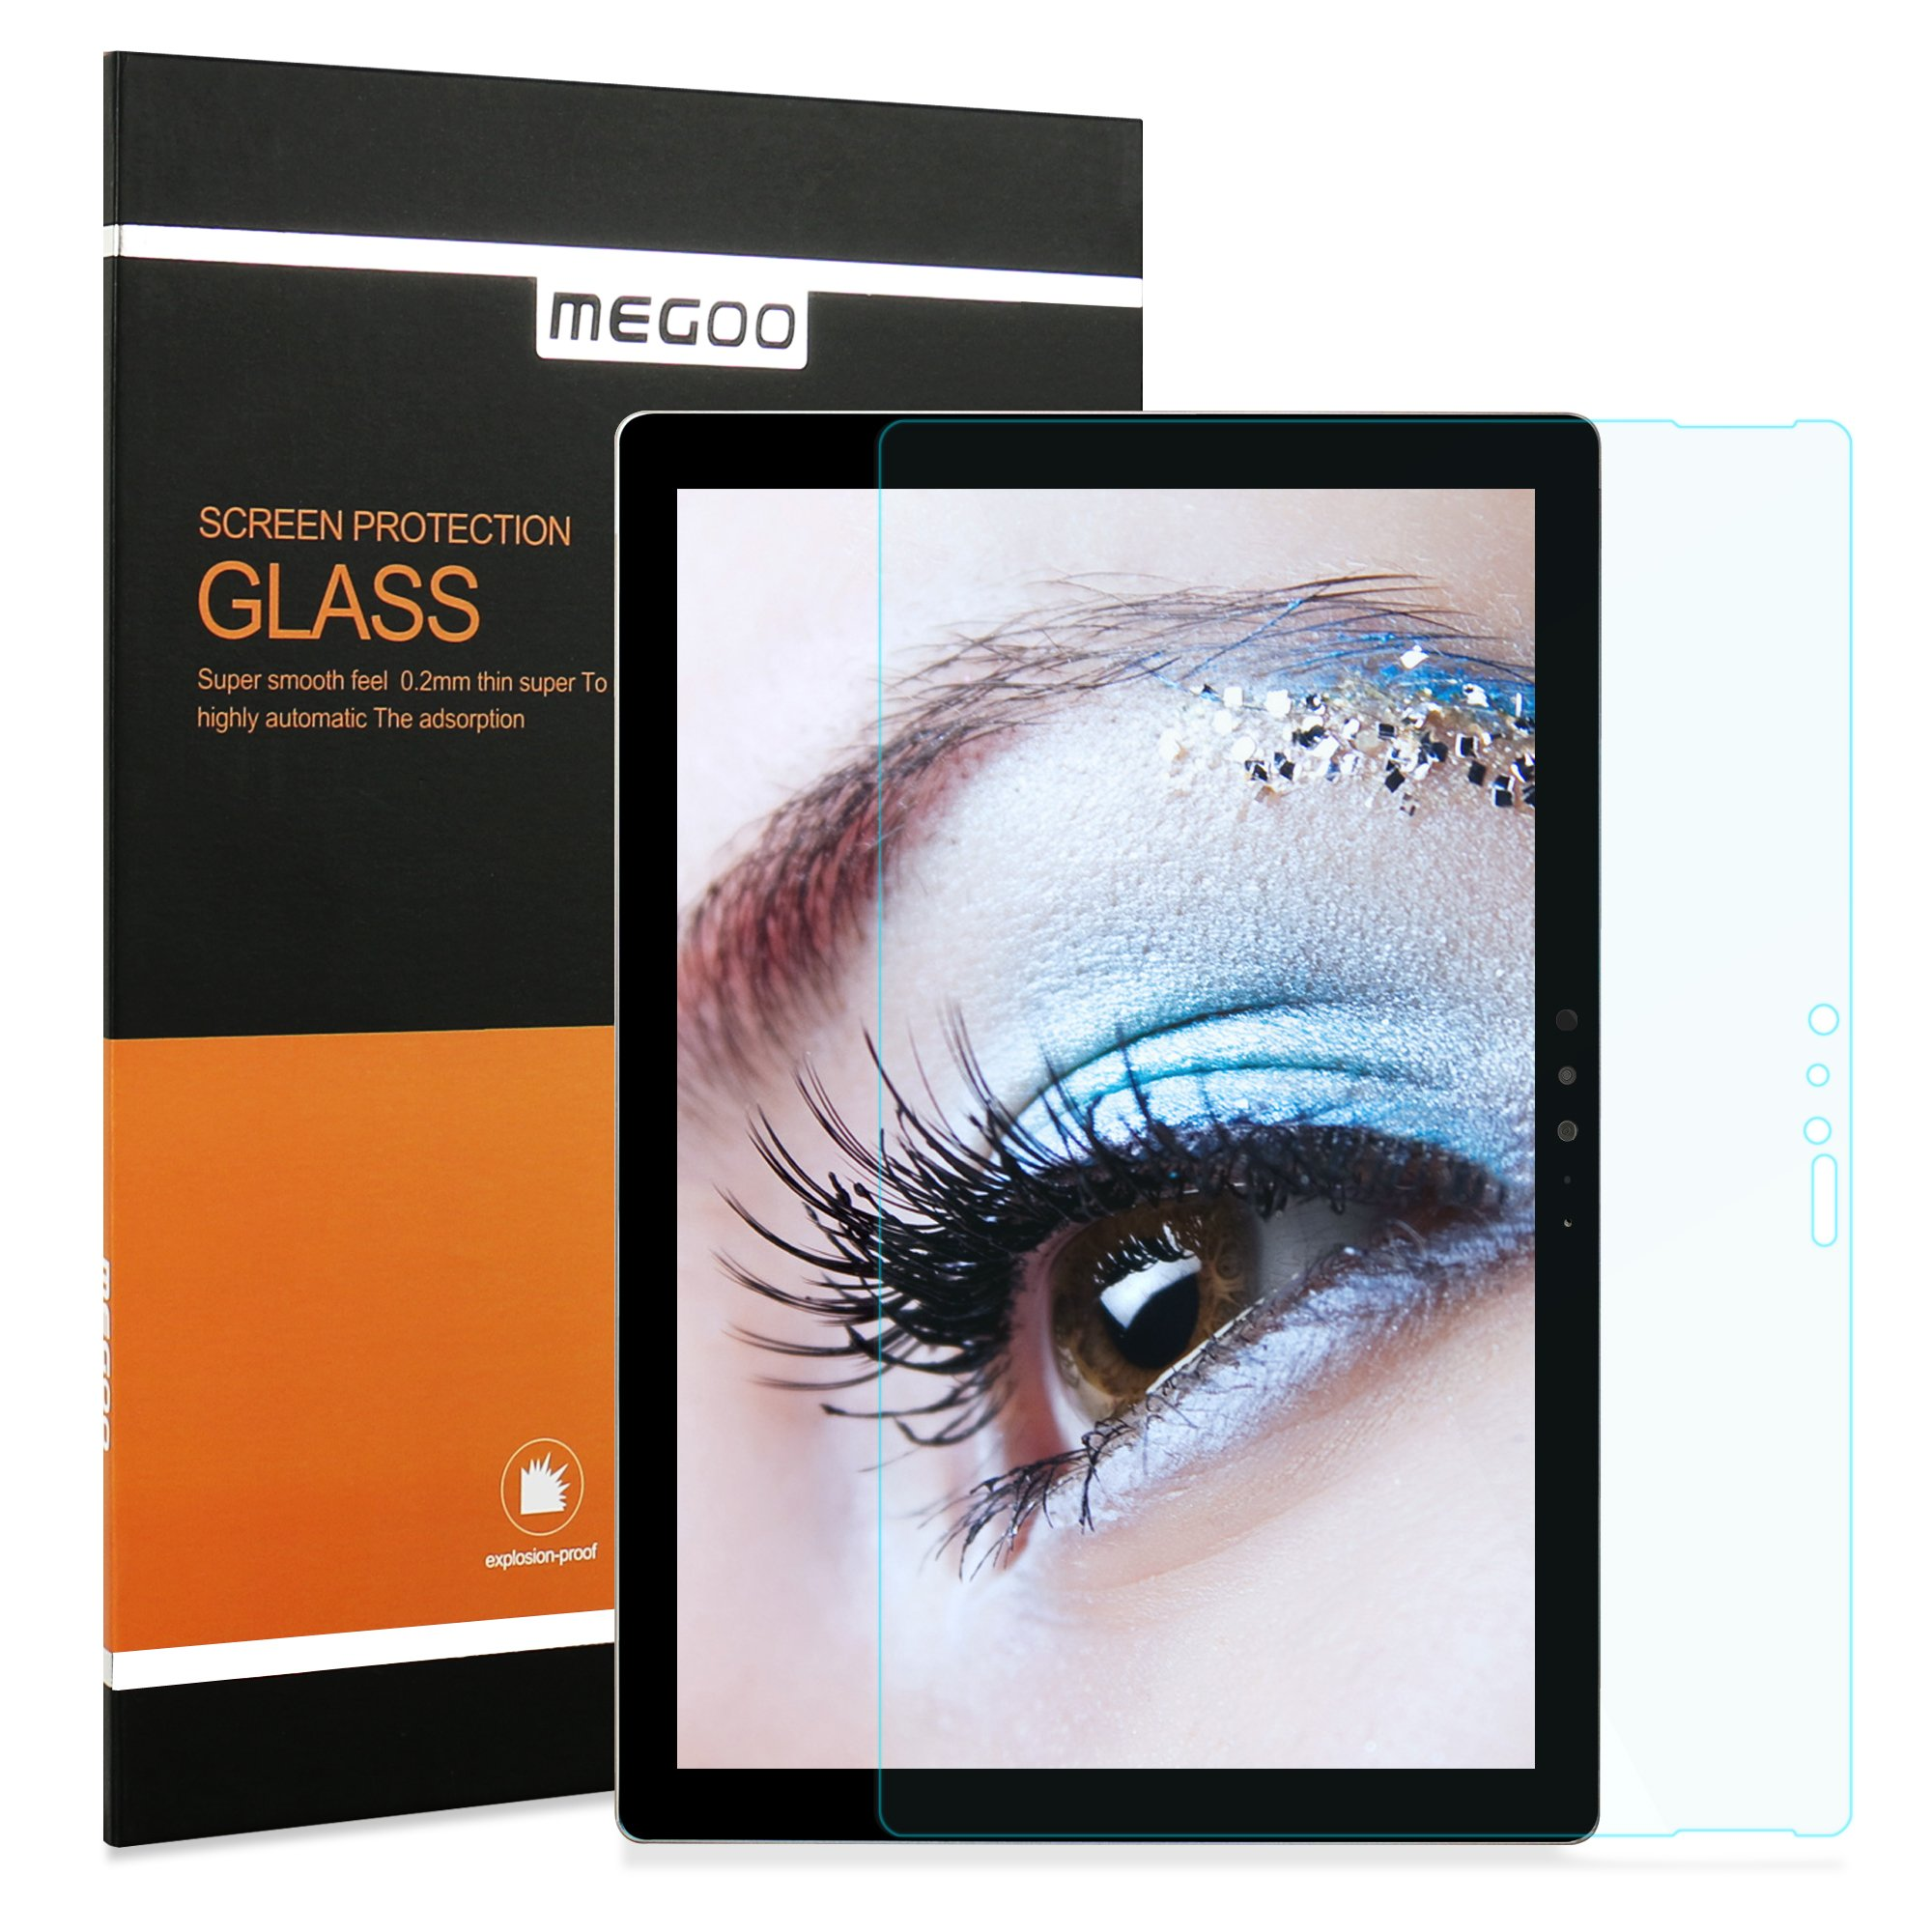 Surface Pro 4 Screen Protector/New Surface Pro (2017), Megoo [Blue Light UV Filter], Premium High Definition Tempered Glass, Reduces Eye Fatigue and Eye Strain, Anti Fingerprint